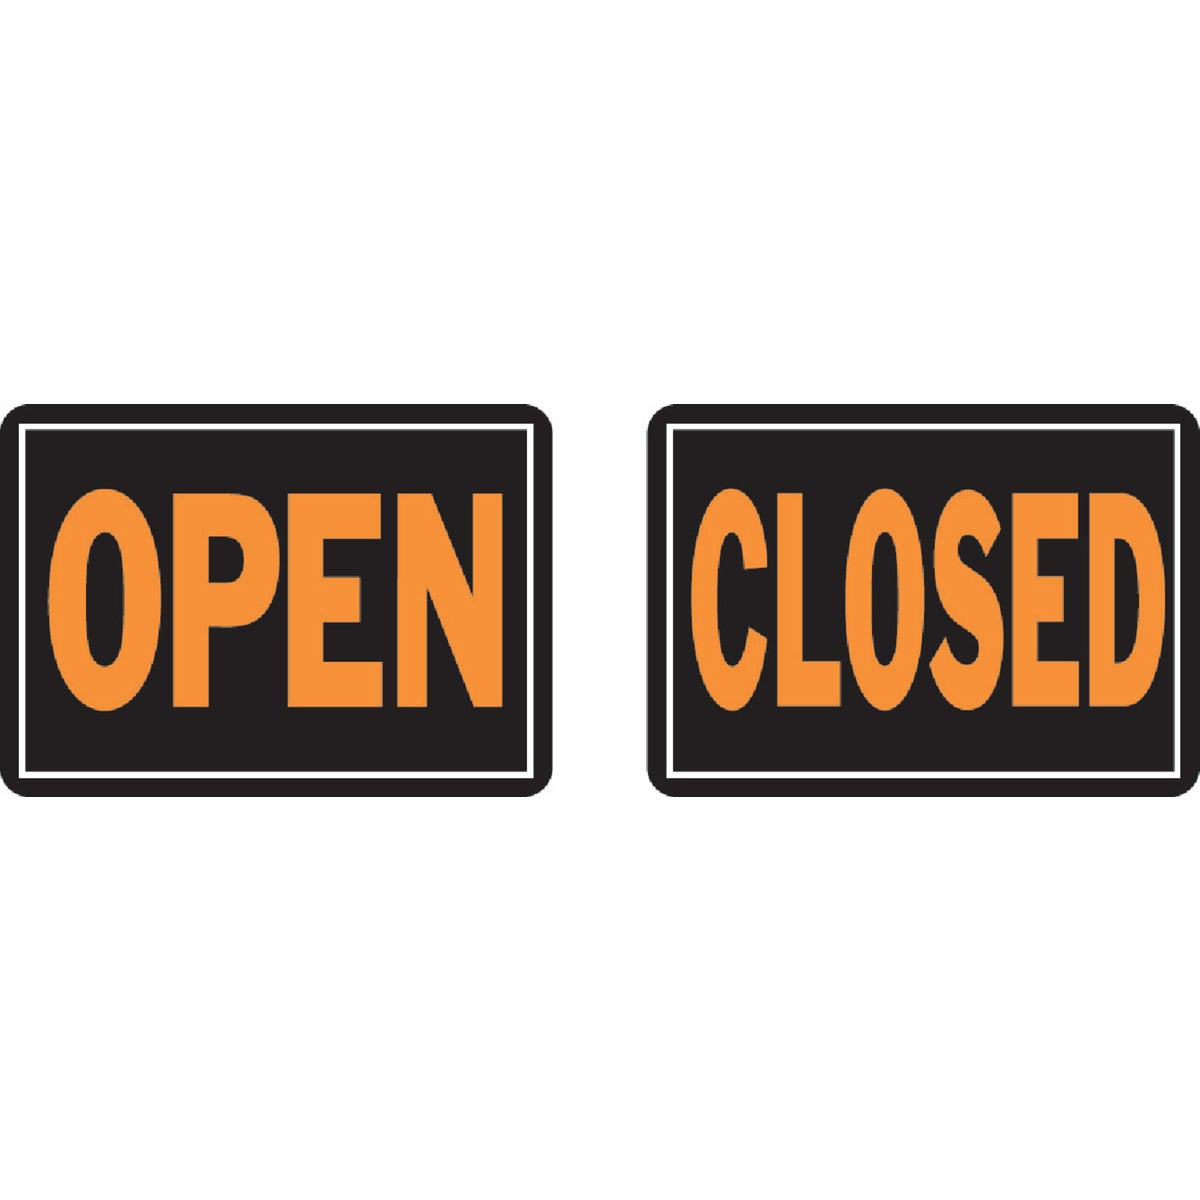 10X14 OPEN/CLOSED SIGN